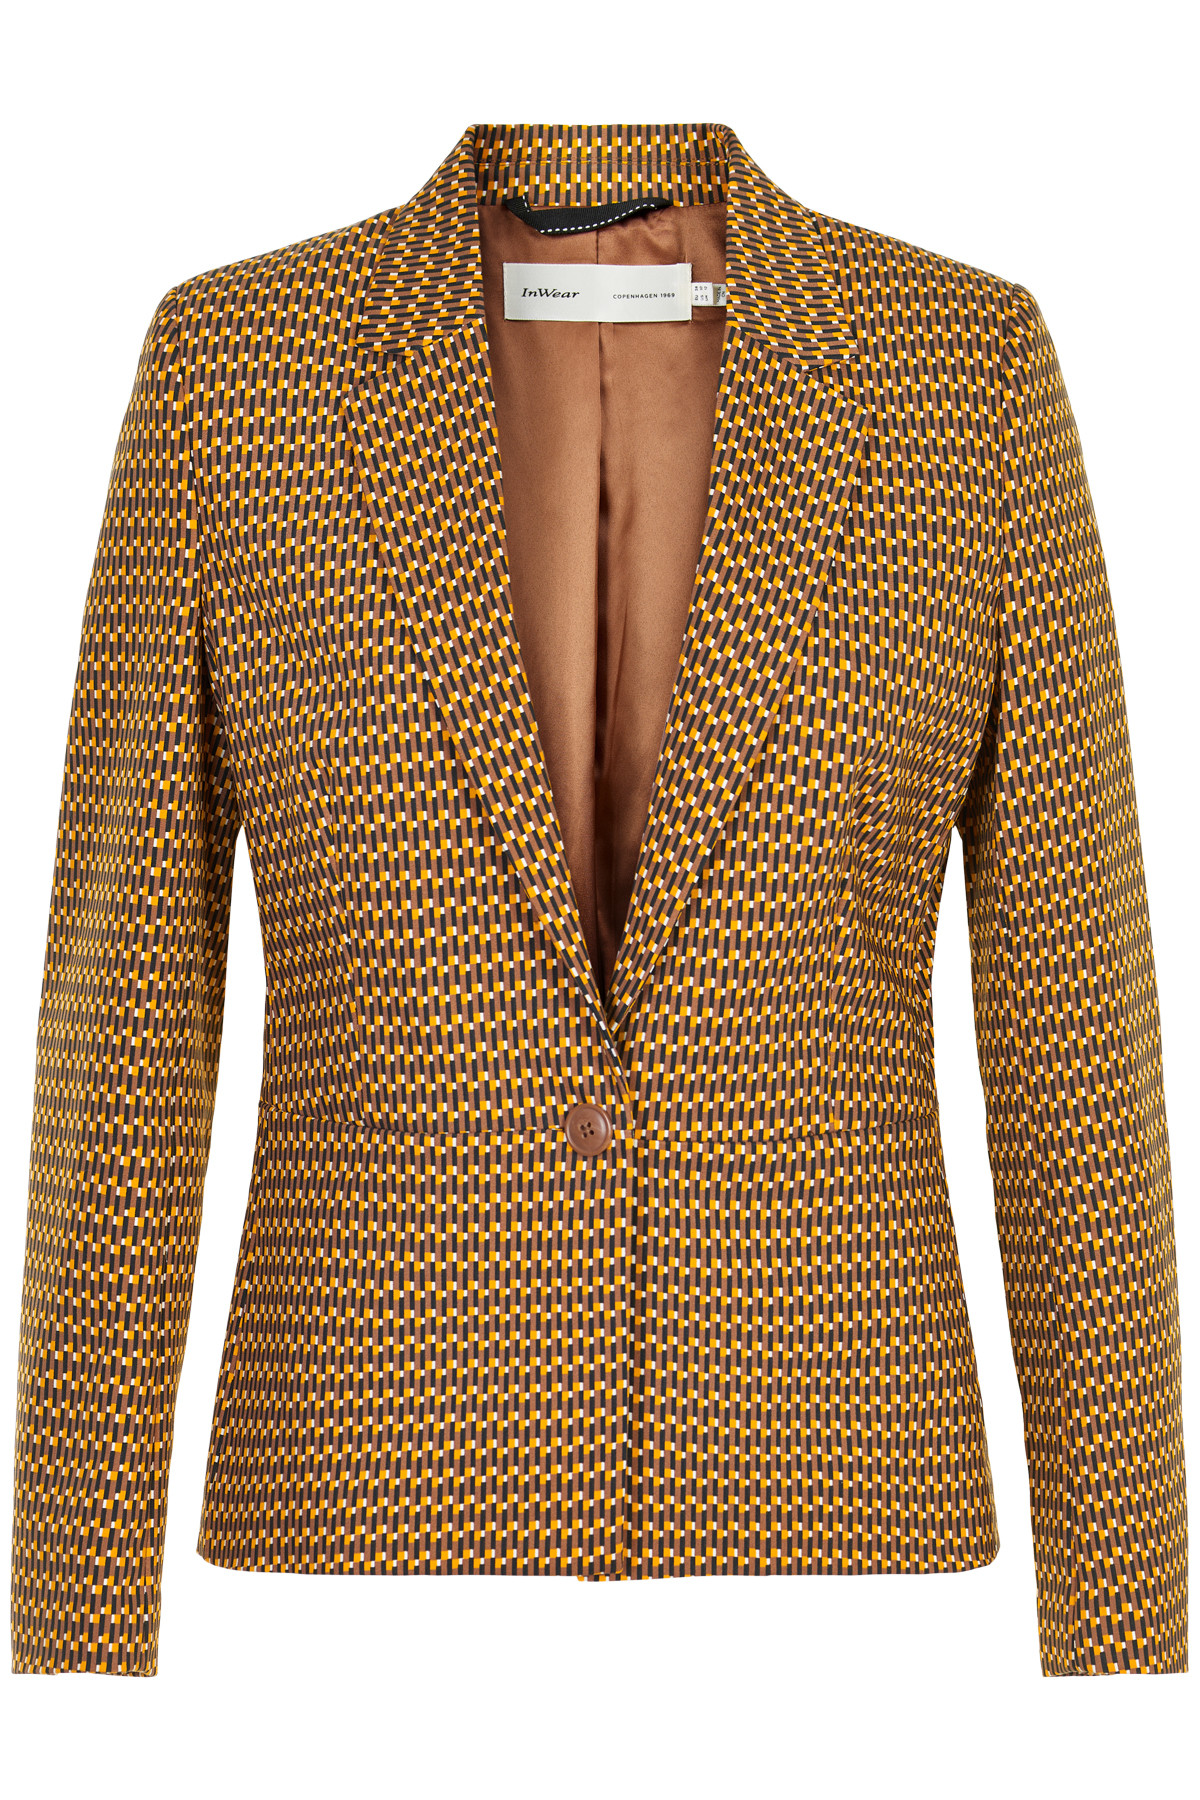 Image of   INWEAR ZELLA BLAZER 30104280 11713 (Brown Graphic Stic 11713, 36)